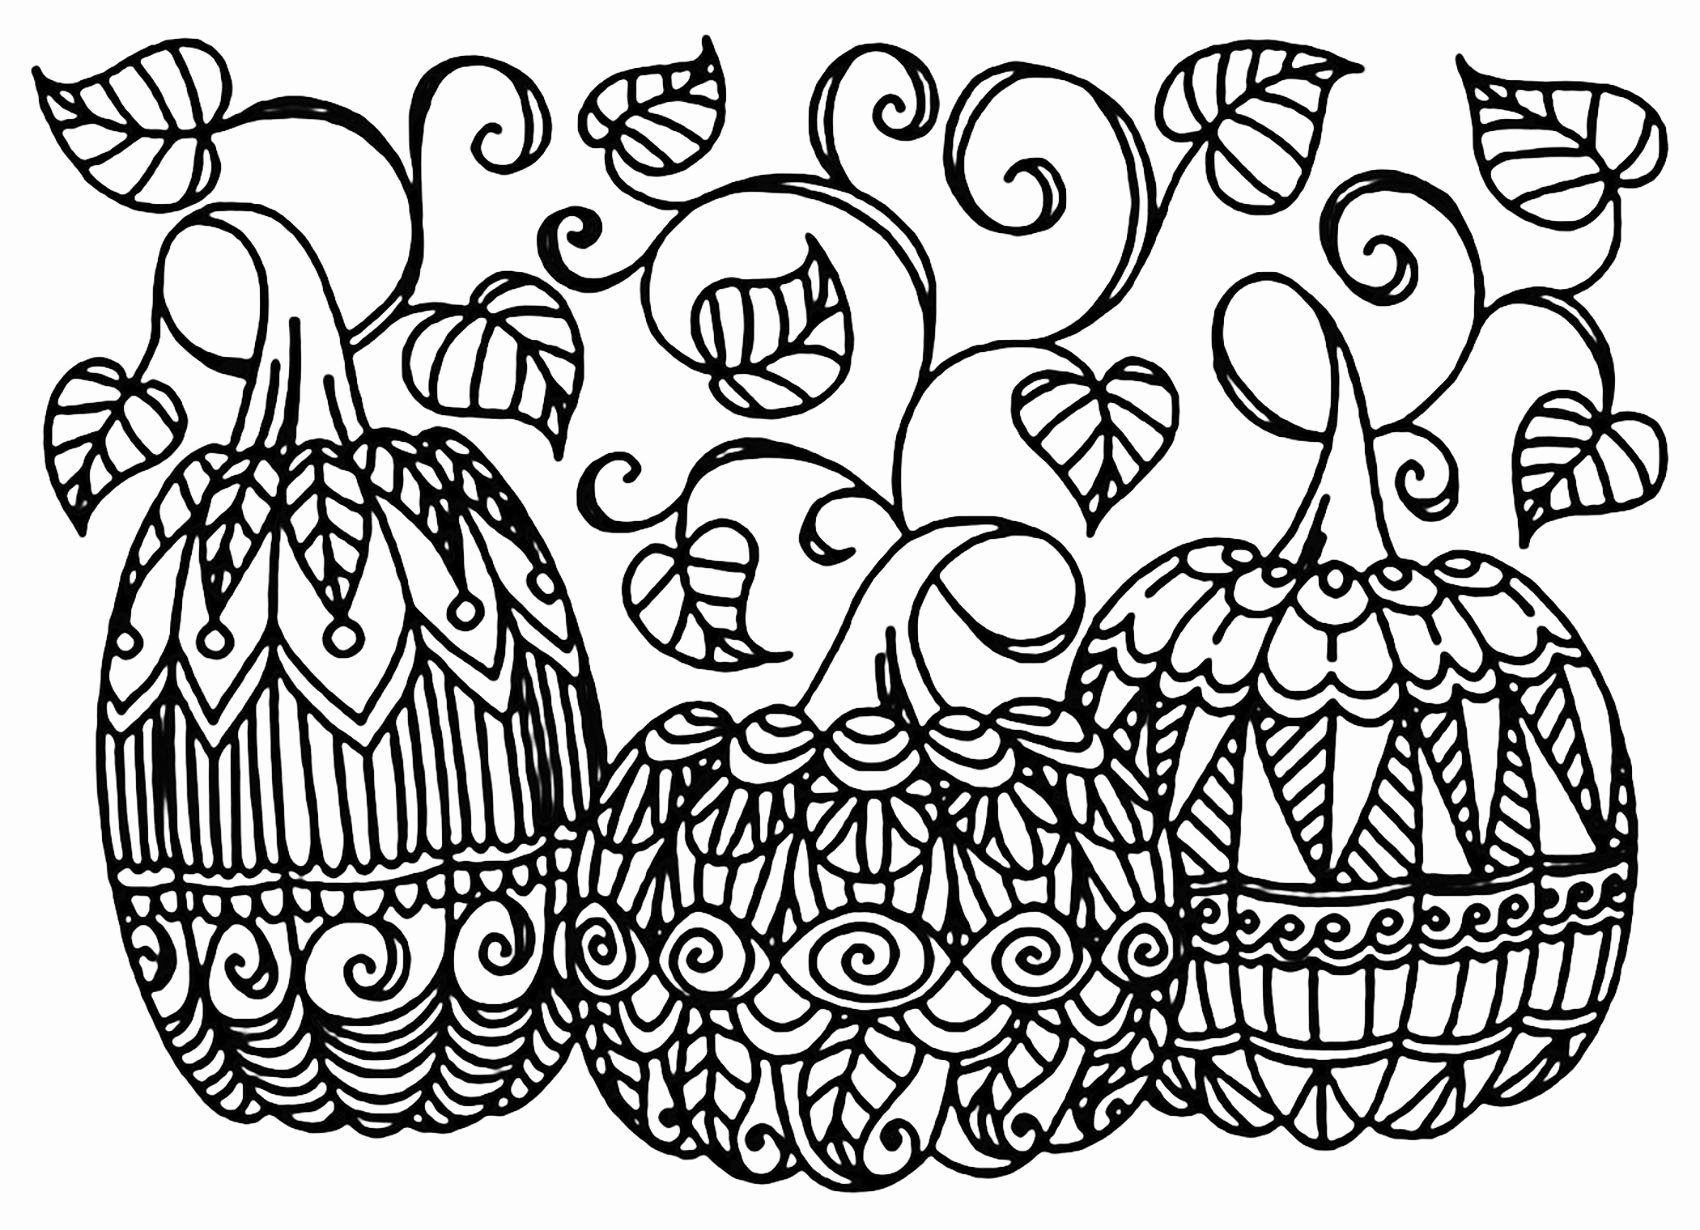 Cute Halloween Coloring Pages Printable Coloring Pages Freerintable Halloween Coloringages Book